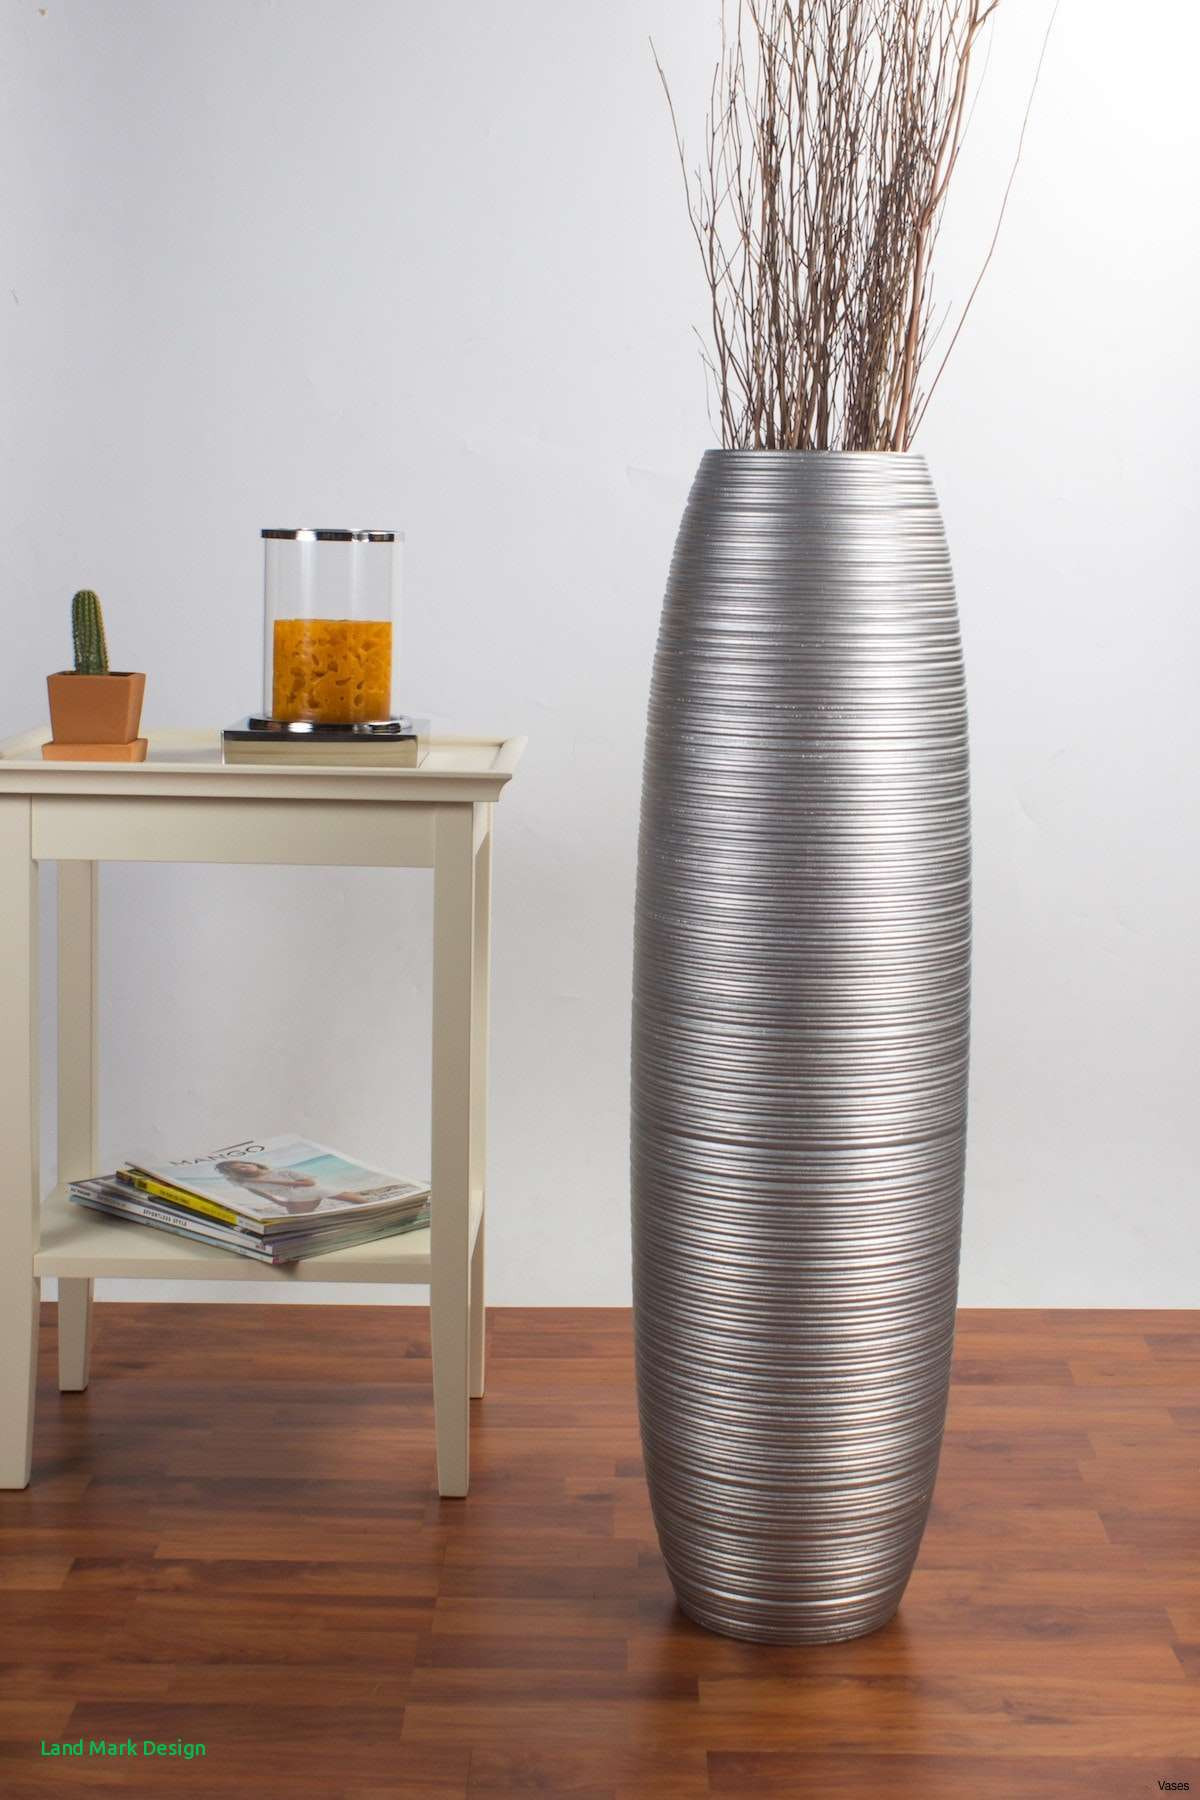 large rustic vase of rustic floor vase image floor vases decoration ideas design vases intended for rustic floor vase image floor vases decoration ideas design of rustic floor vase image floor vases